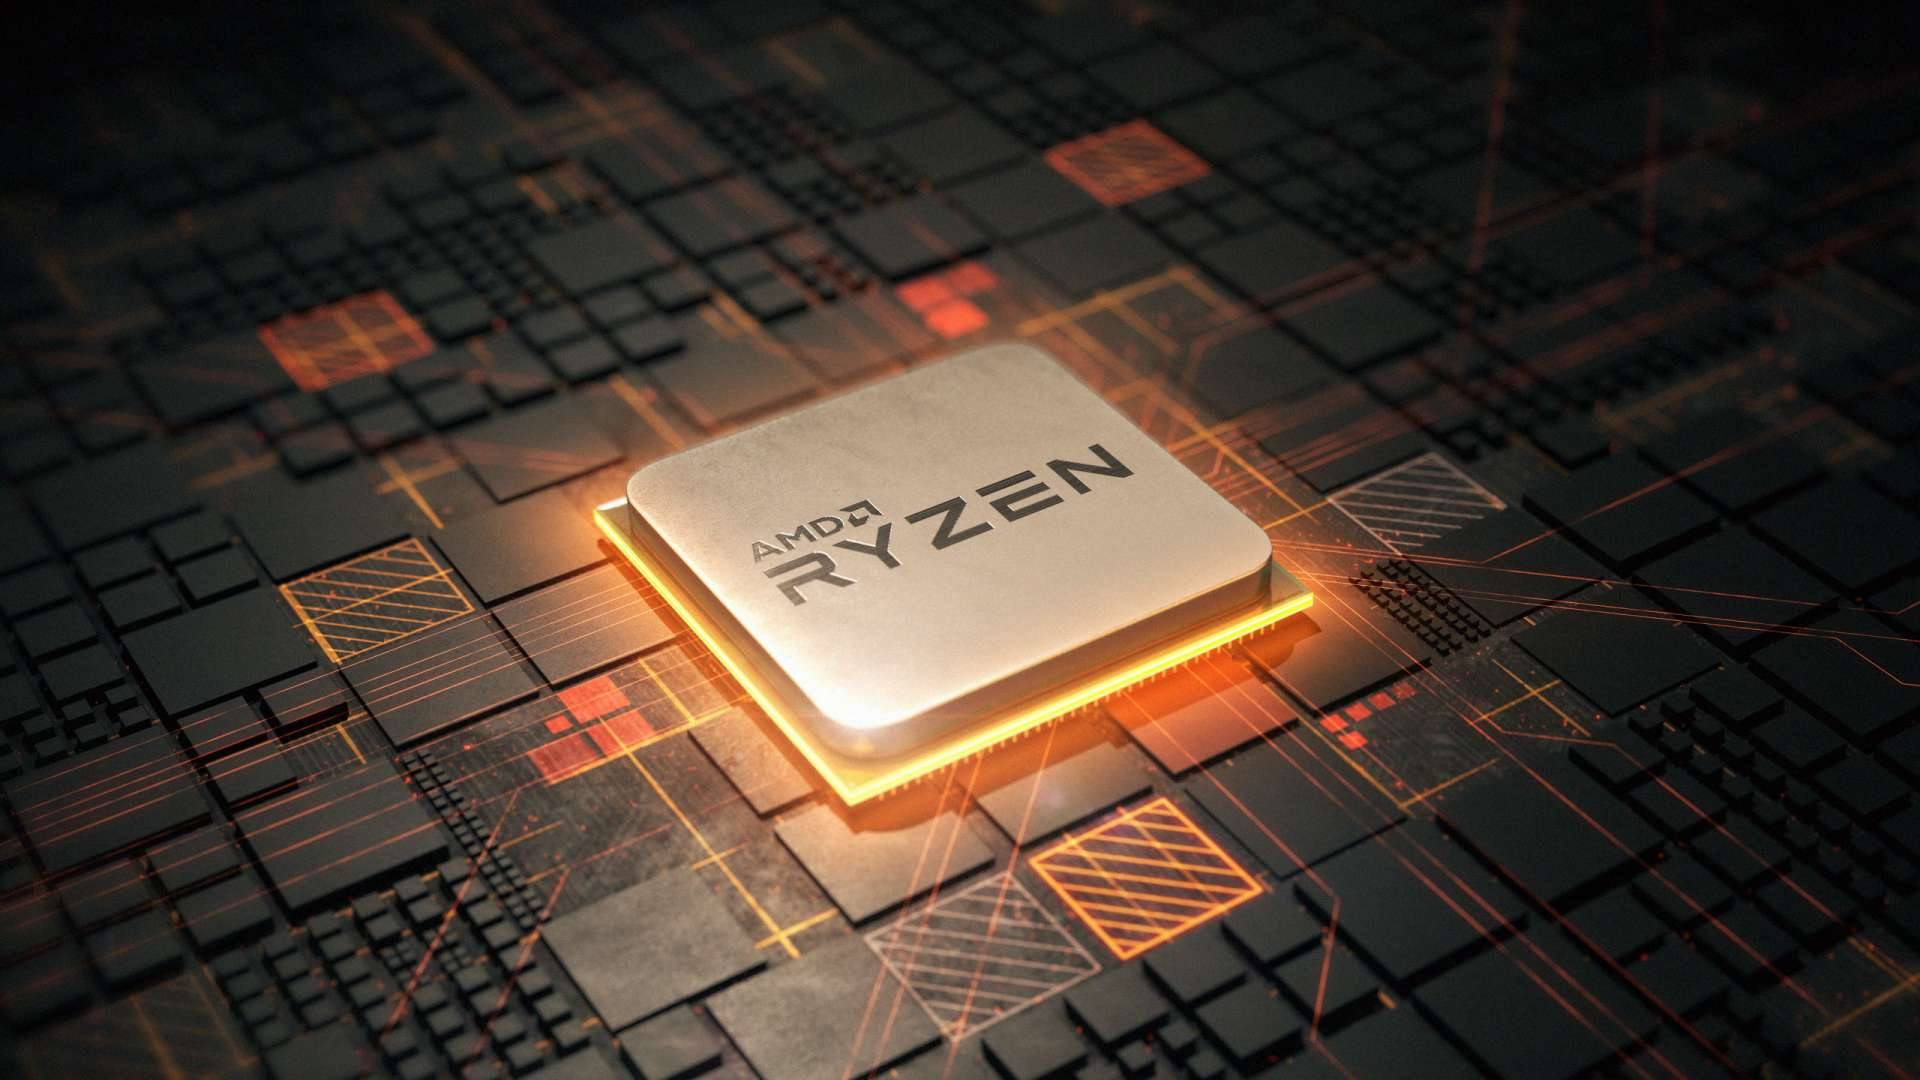 AMD Will Maintain Support For Next Generation Ryzen 3000 CPU In Older Motherboards, Contrary To Rumors